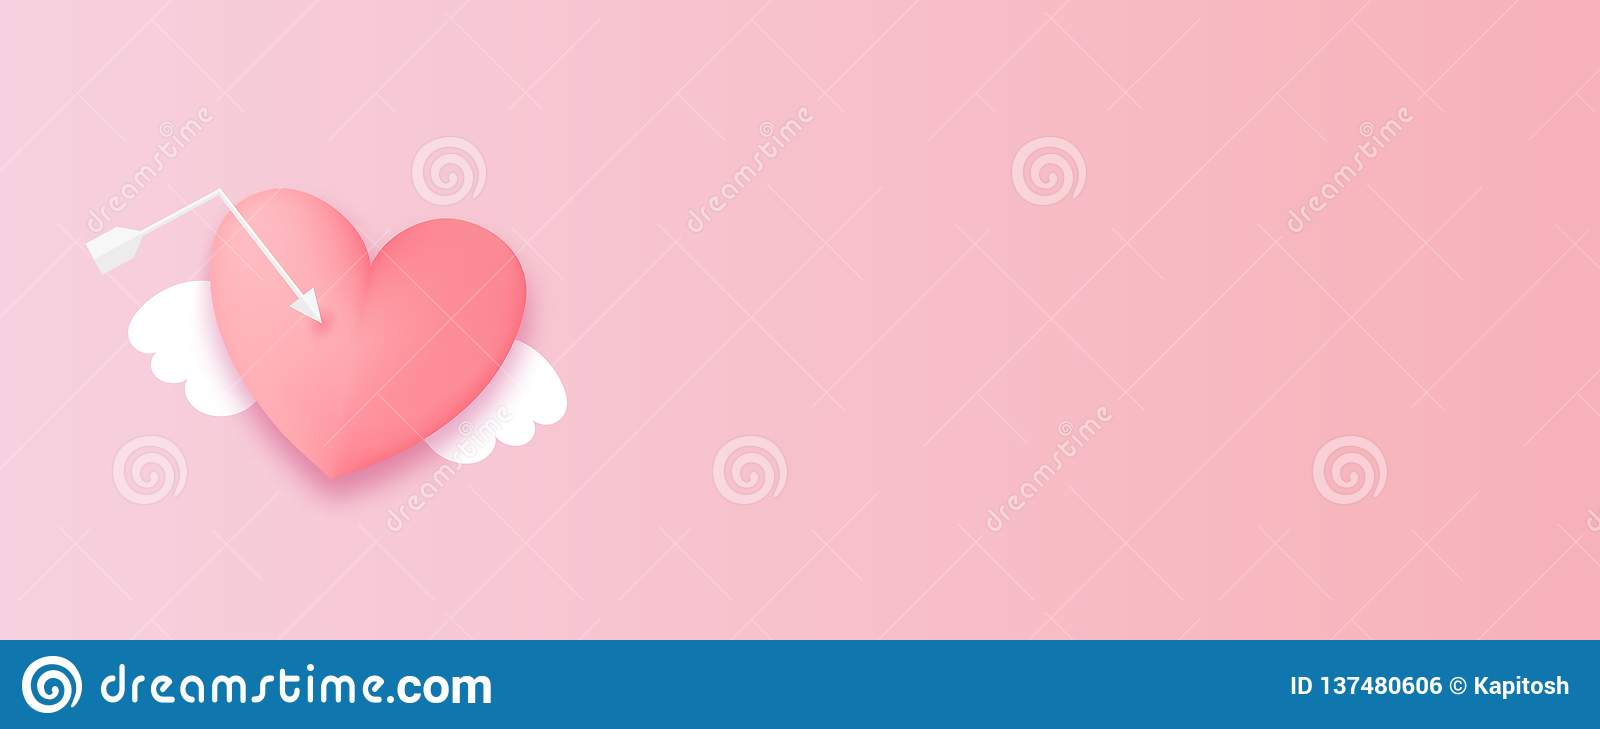 Paper cut valentines day origami web banner. In pastel colors. Cute love holiday horizontal banner design. Angel wings fly pink heart royalty free stock image